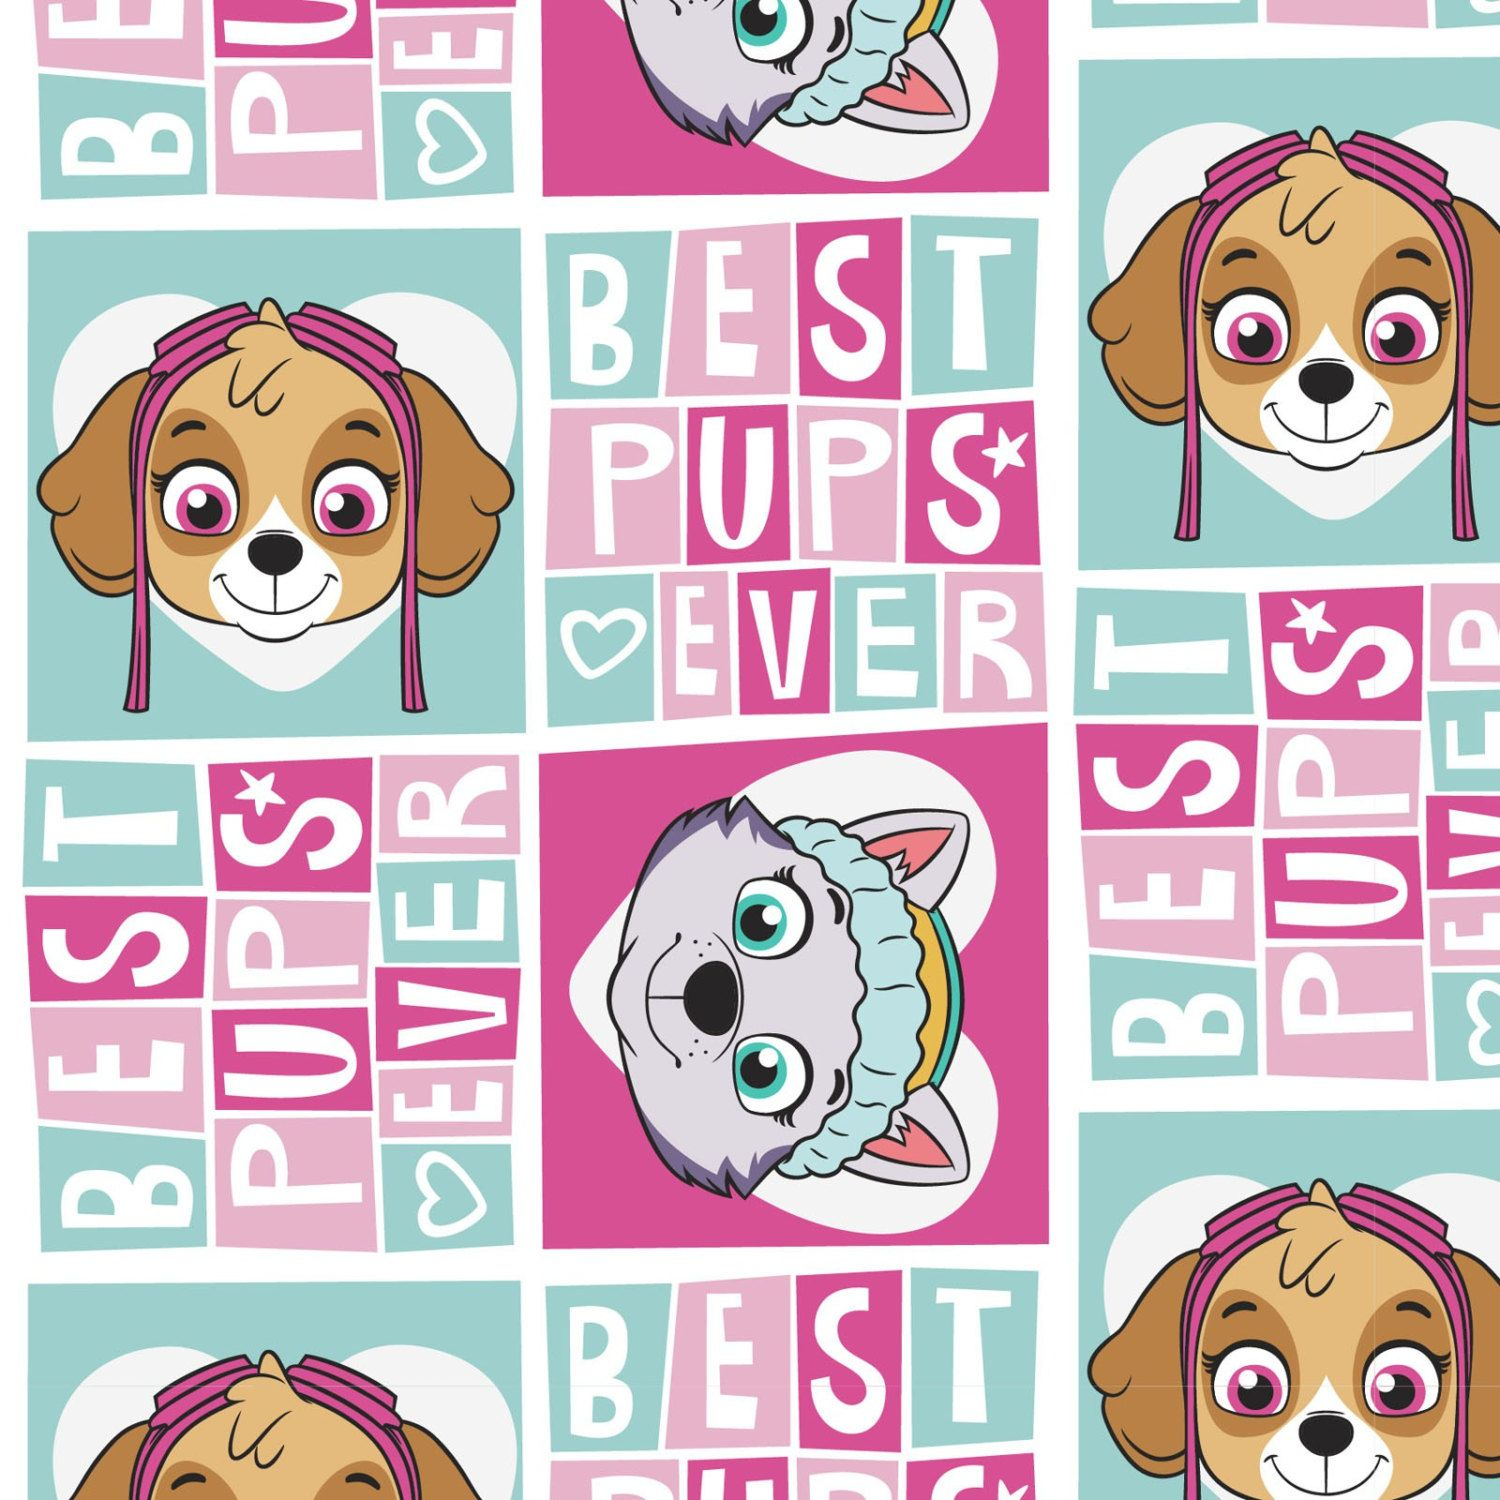 New Arrival Paw Patrol Best Pups Ever Cotton Fabric, BTY. by JinsQualityFabric on Etsy